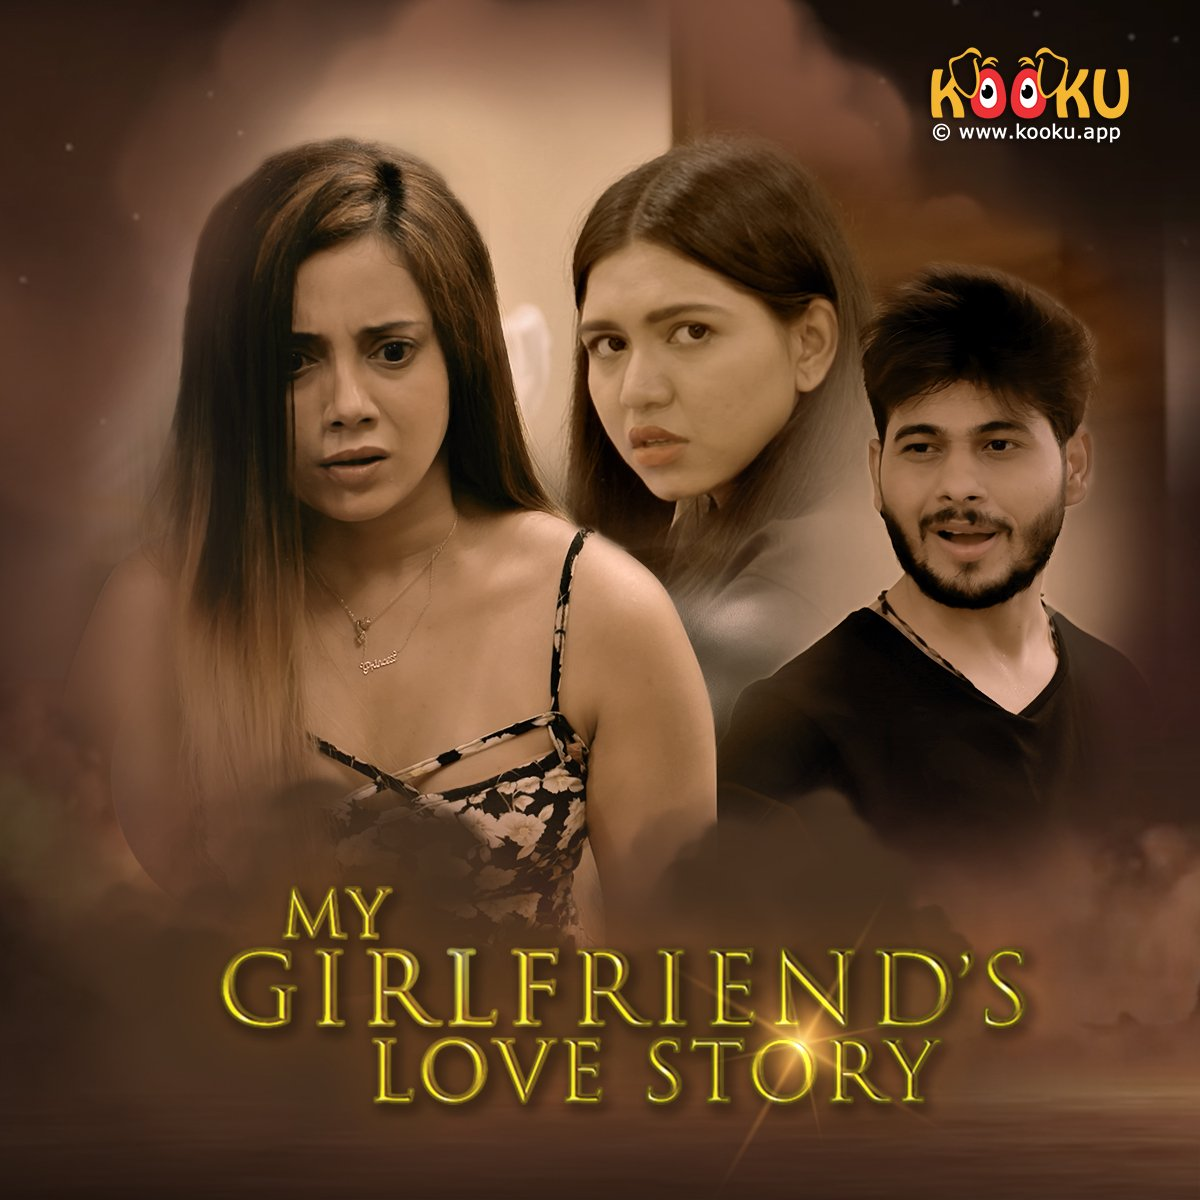 My Girlfriends Love Story 2020 Hindi Complete Kooku App Web Series 720p HDRip 350MB Download